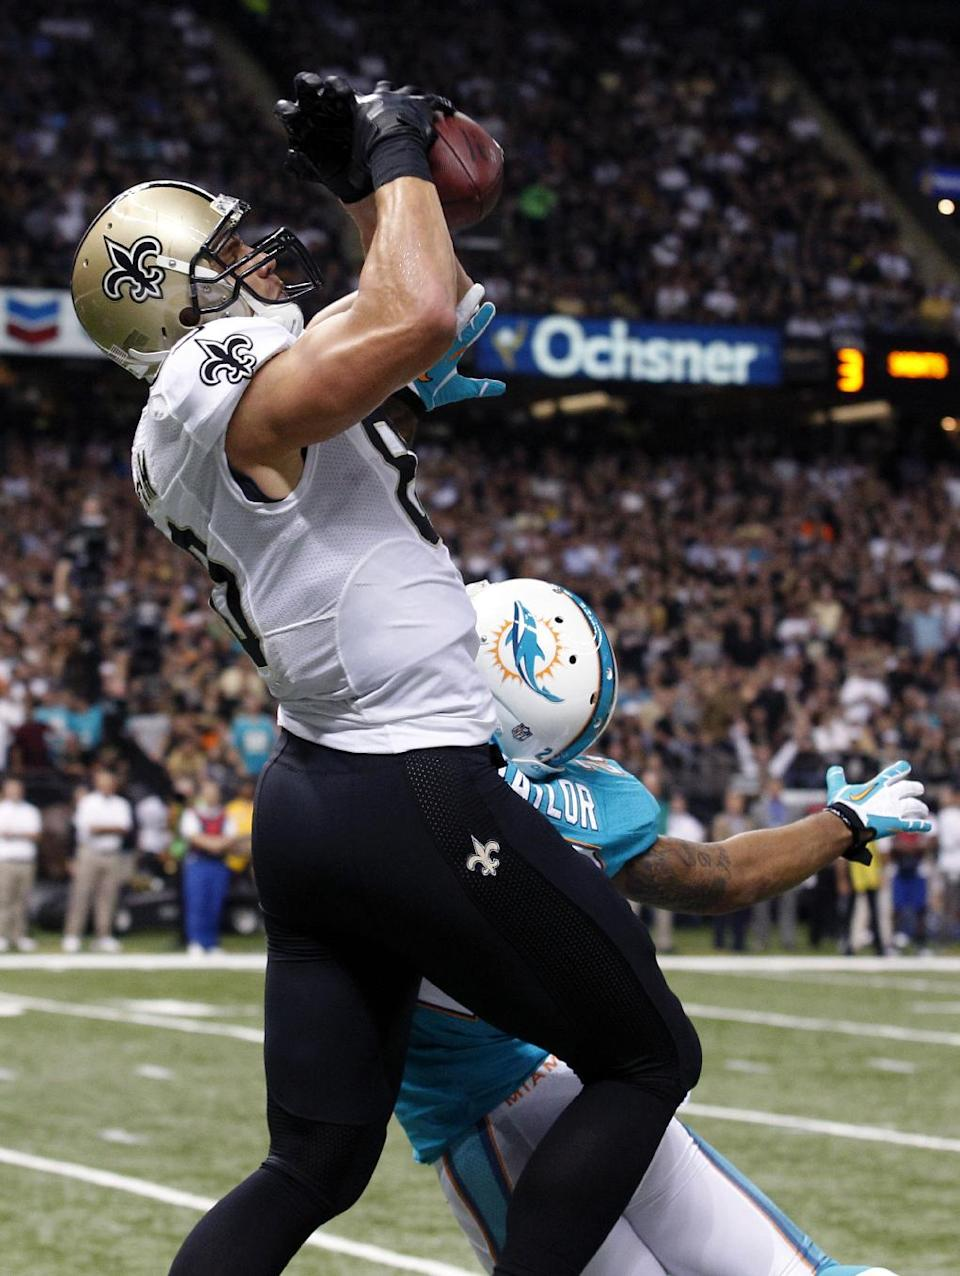 New Orleans Saints tight end Jimmy Graham (80) pulls in a touchdown reception over Miami Dolphins cornerback Jamar Taylor (22) in the first half of an NFL football game in New Orleans, Monday, Sept. 30, 2013. (AP Photo/Bill Haber)